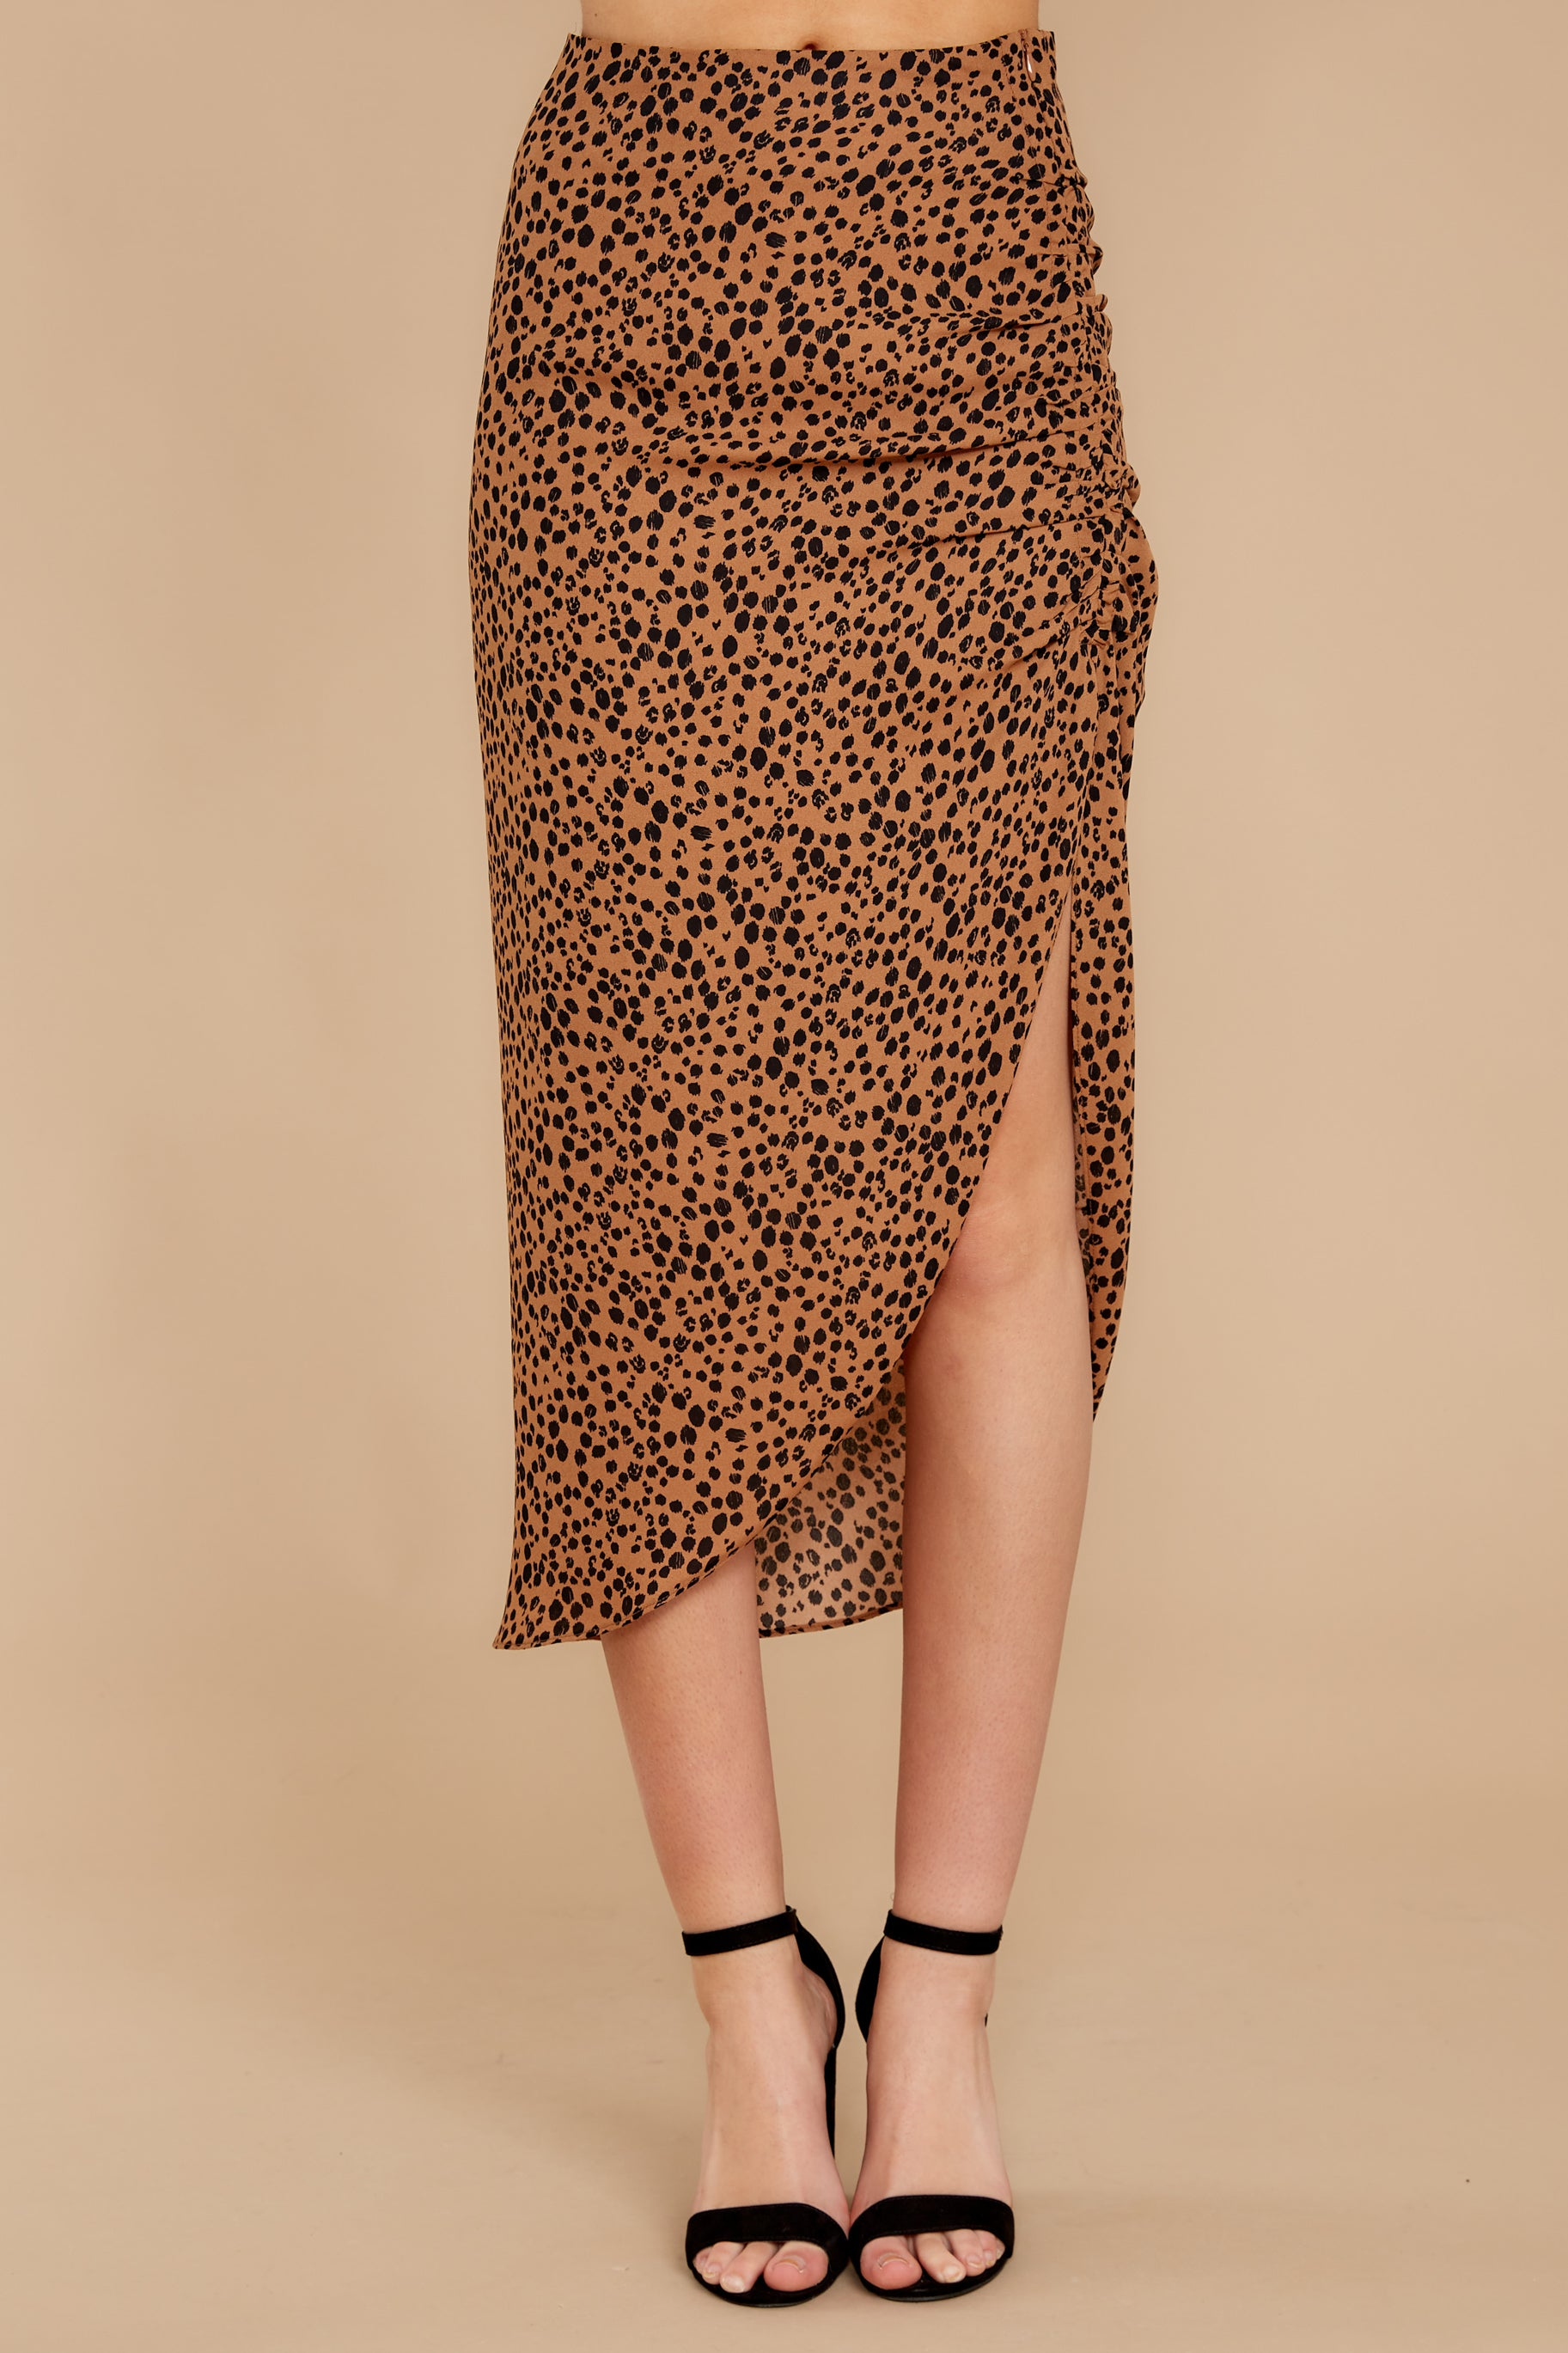 2 In Her Nature Tan Cheetah Print Skirt at reddressboutique.com